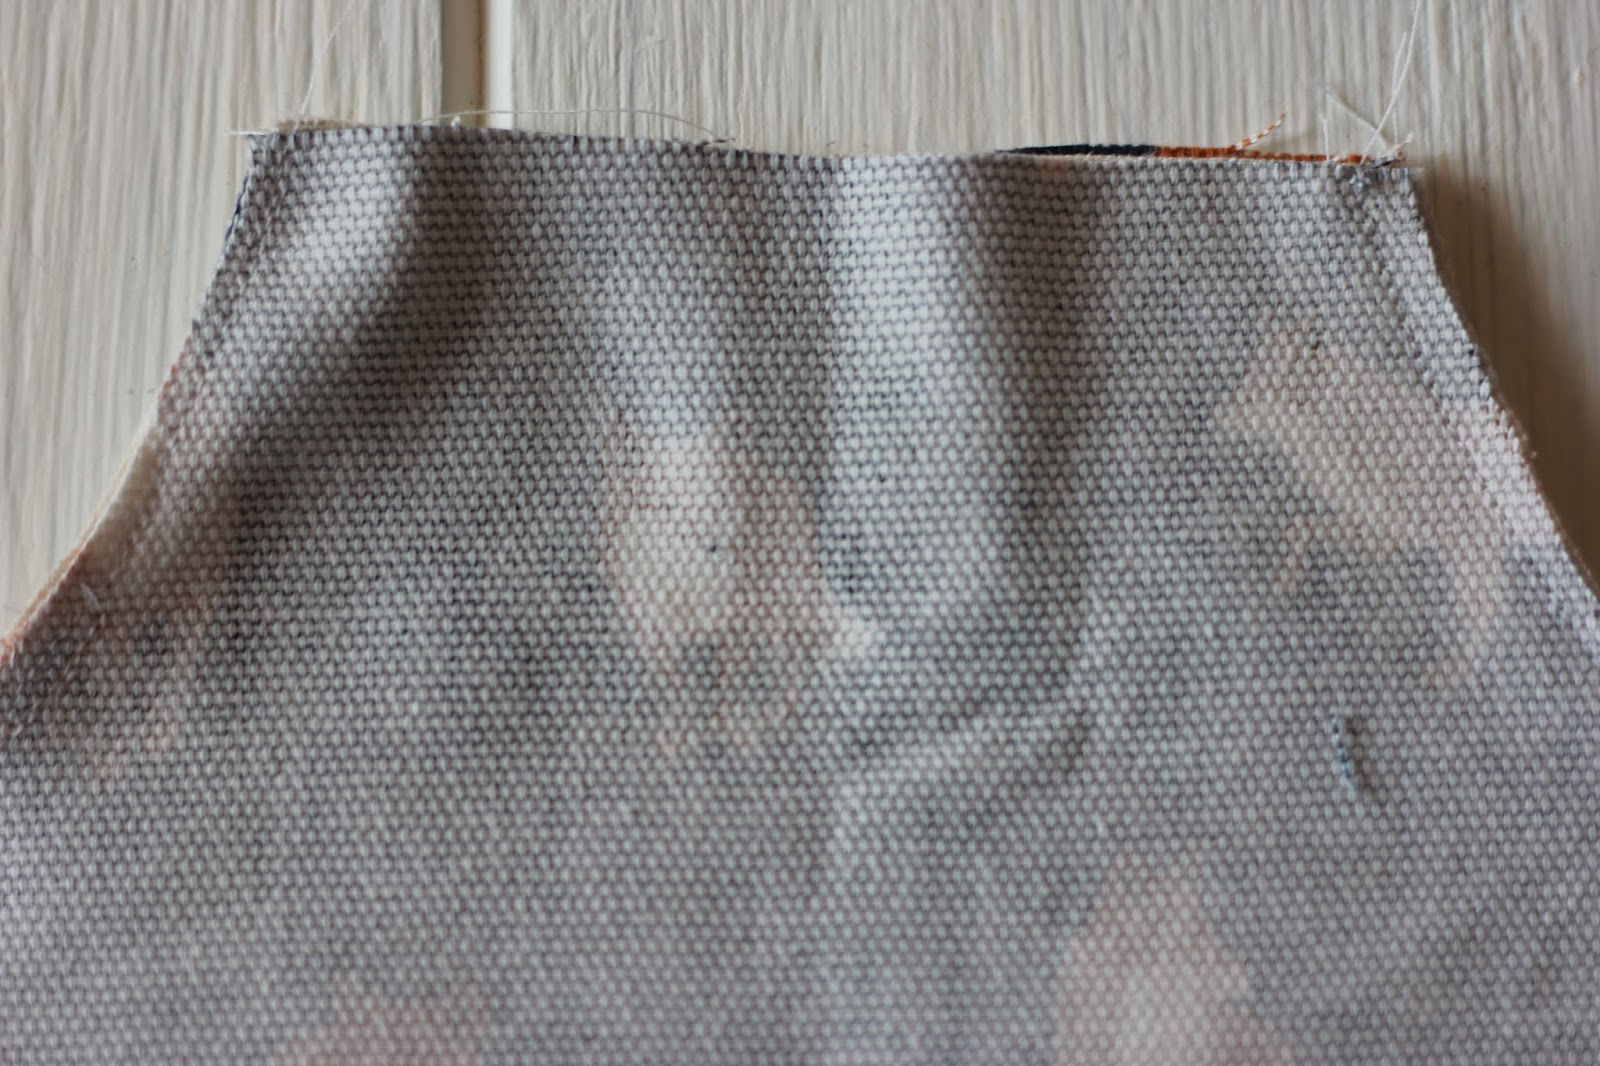 this handmade life: Sew Foxy Knitting Bag Tutorial